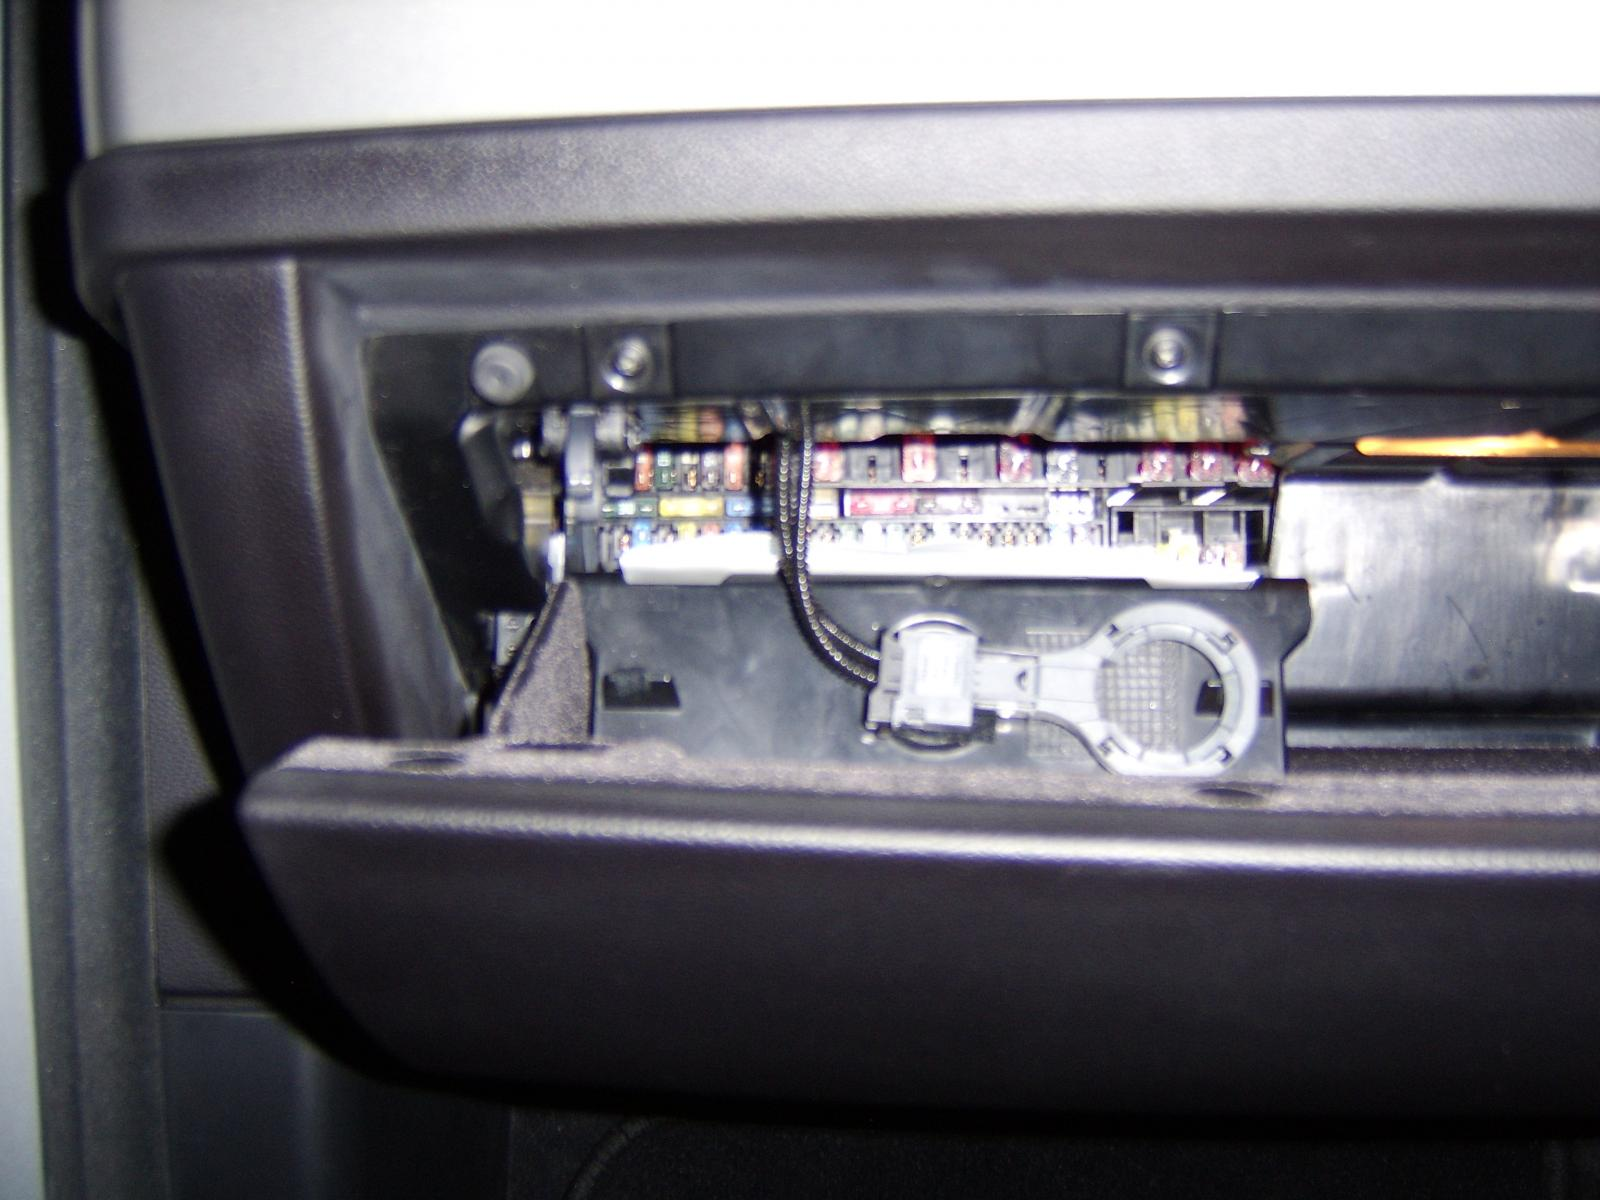 Location of fuse box for cigarett lighter - Bimmerfest - BMW Forums